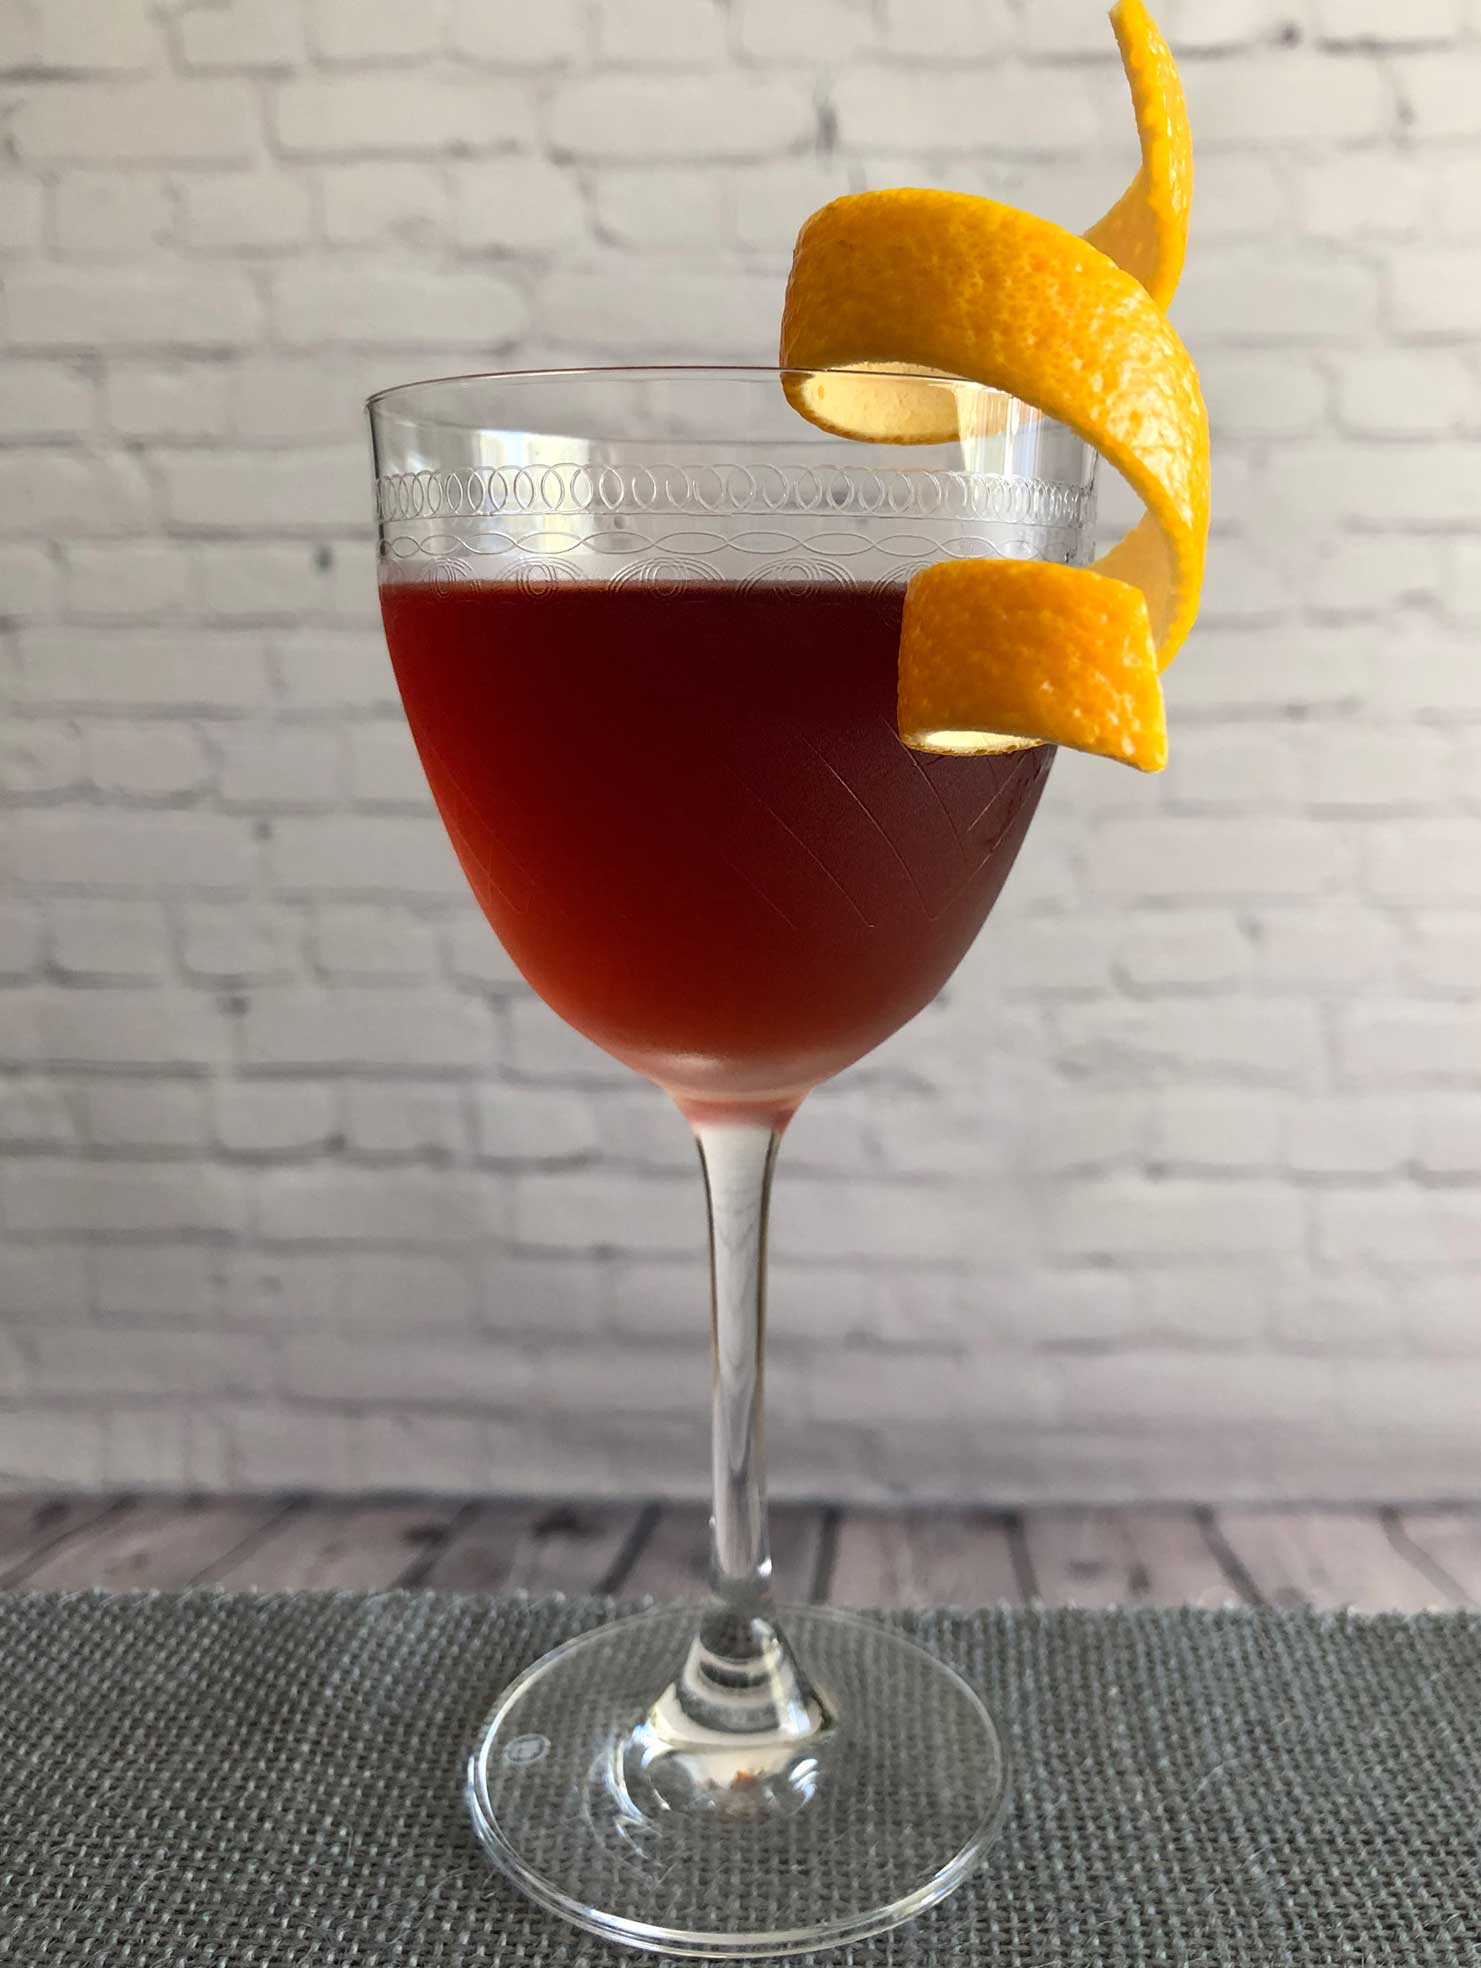 An example of the Fair Thee Well, the mixed drink (cocktail), by Brian Means, Fifth Floor, San Francisco, featuring bourbon whiskey, Cocchi Barolo Chinato, and Pierre Ferrand Ancient Formula Orange Curaçao; photo by Lee Edwards